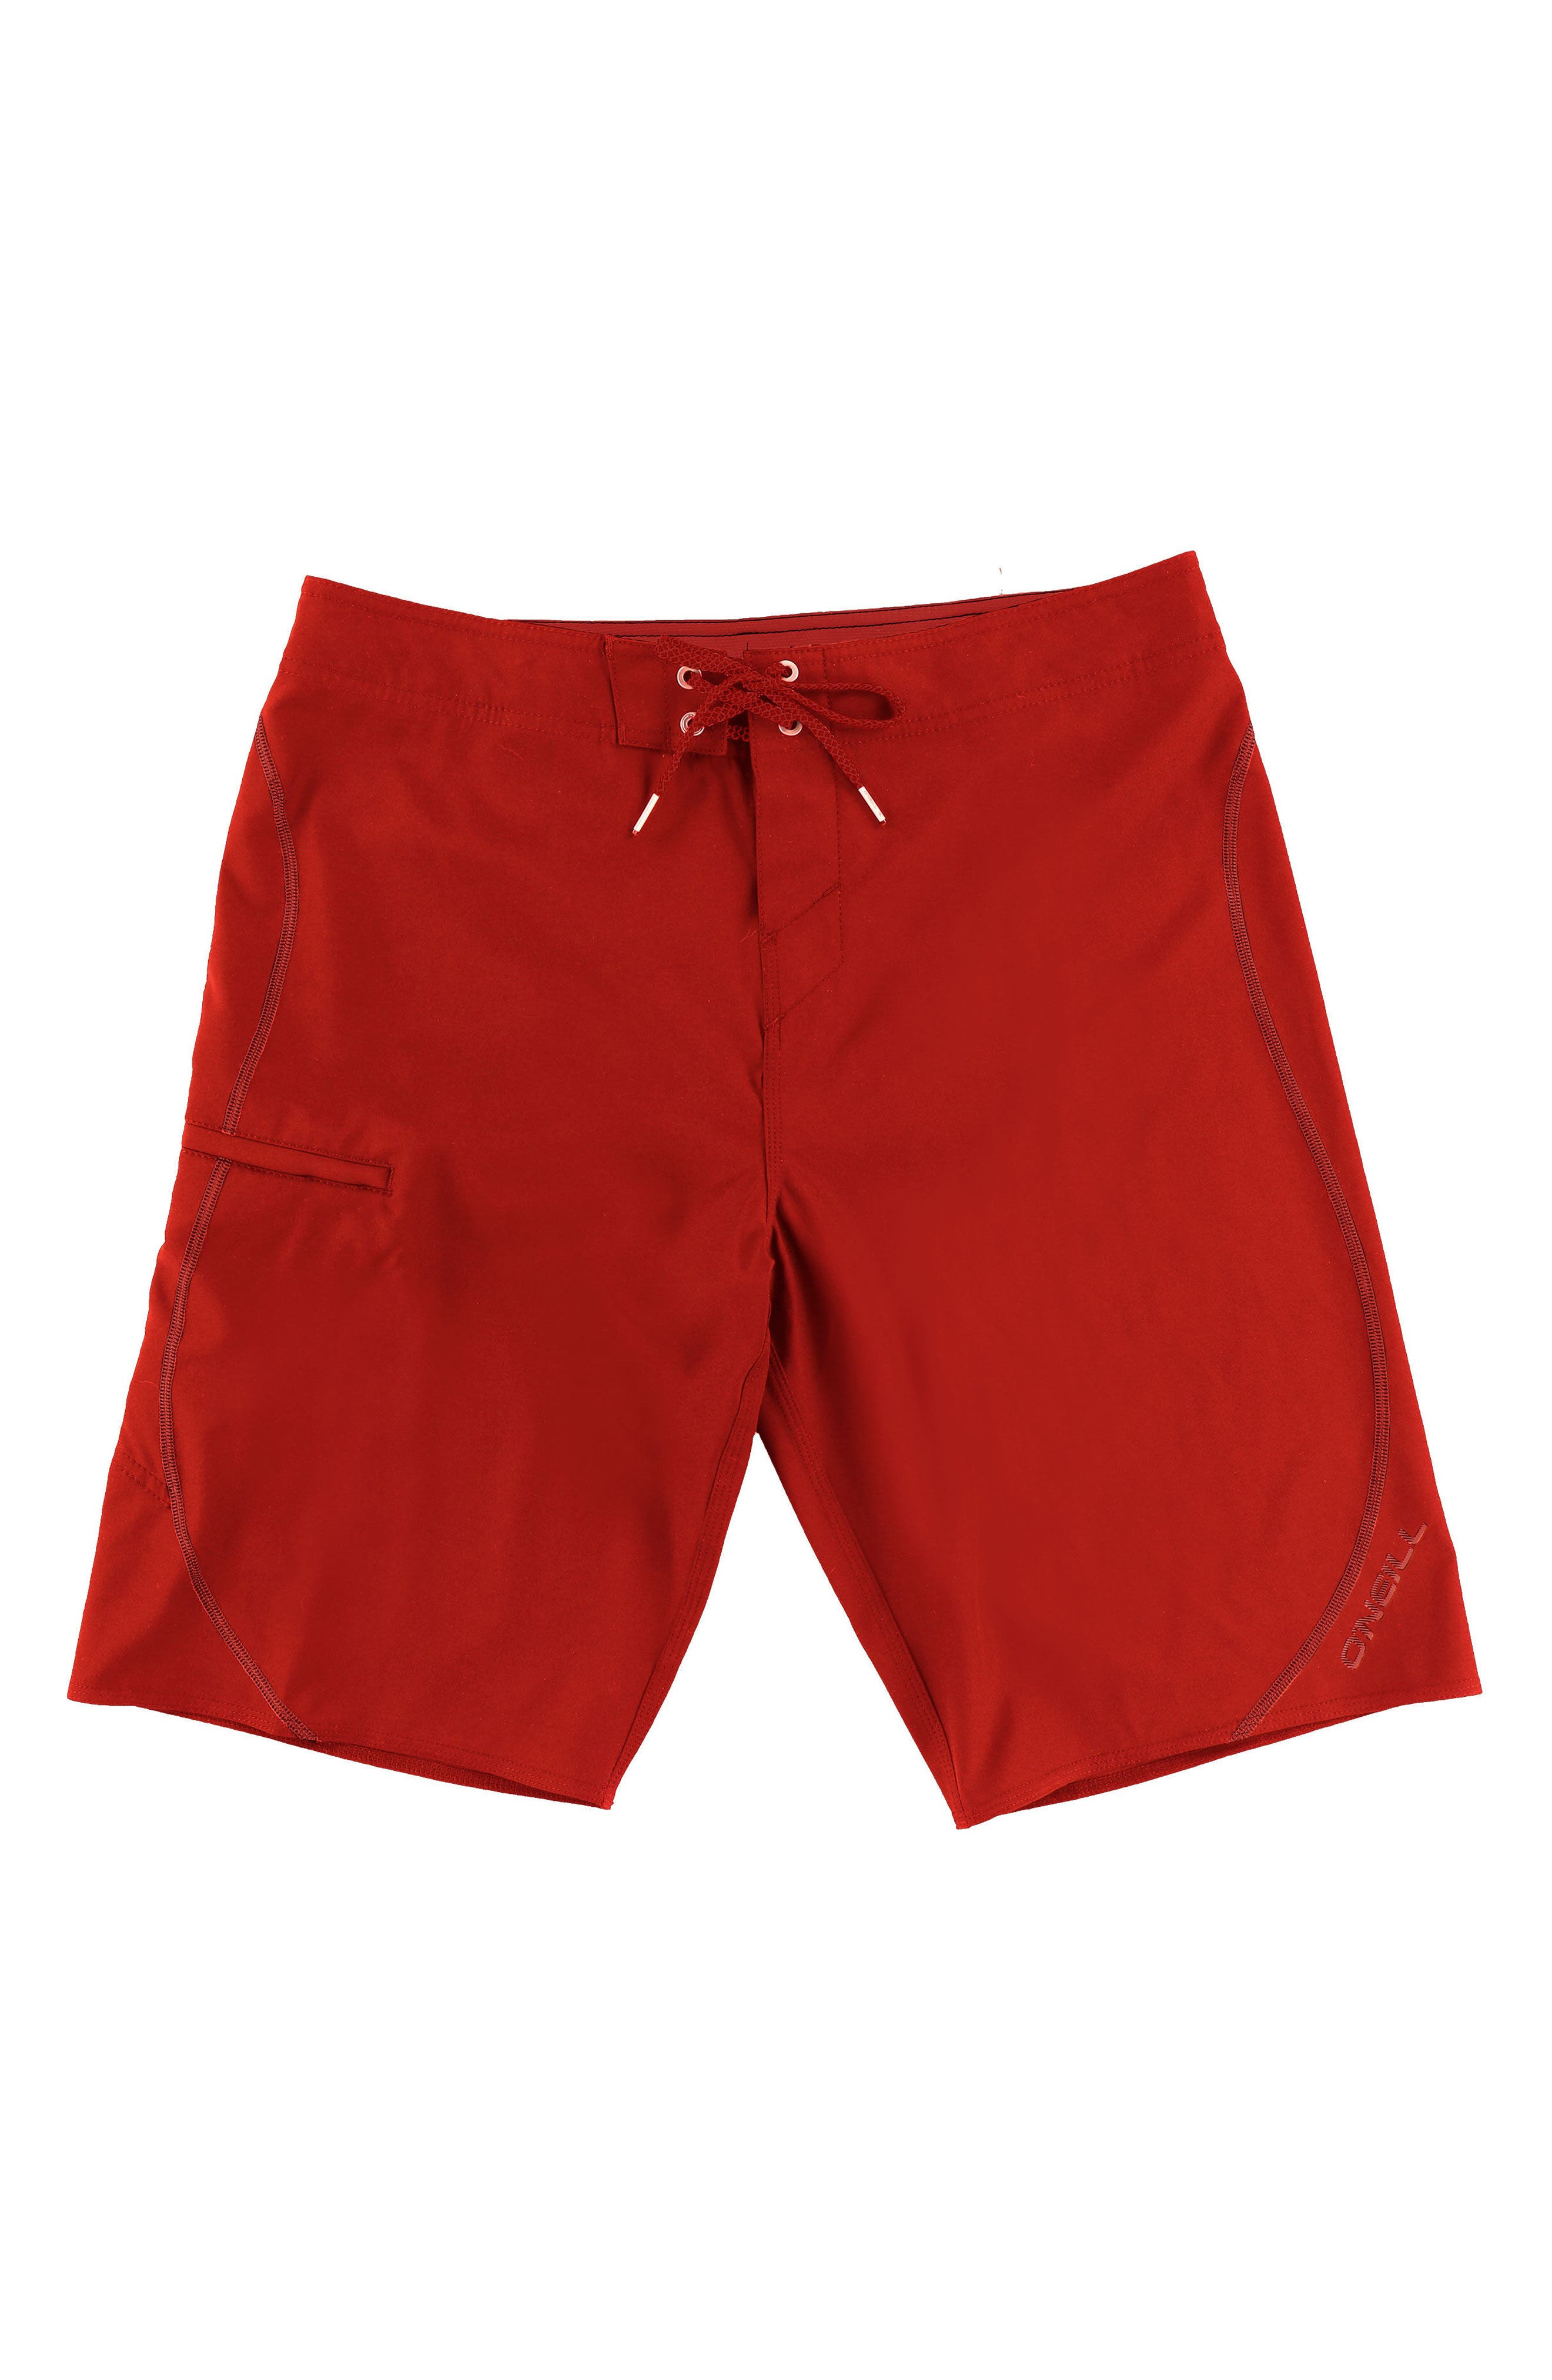 Hyperfreak S-Seam Stretch Board Shorts,                             Main thumbnail 1, color,                             Red